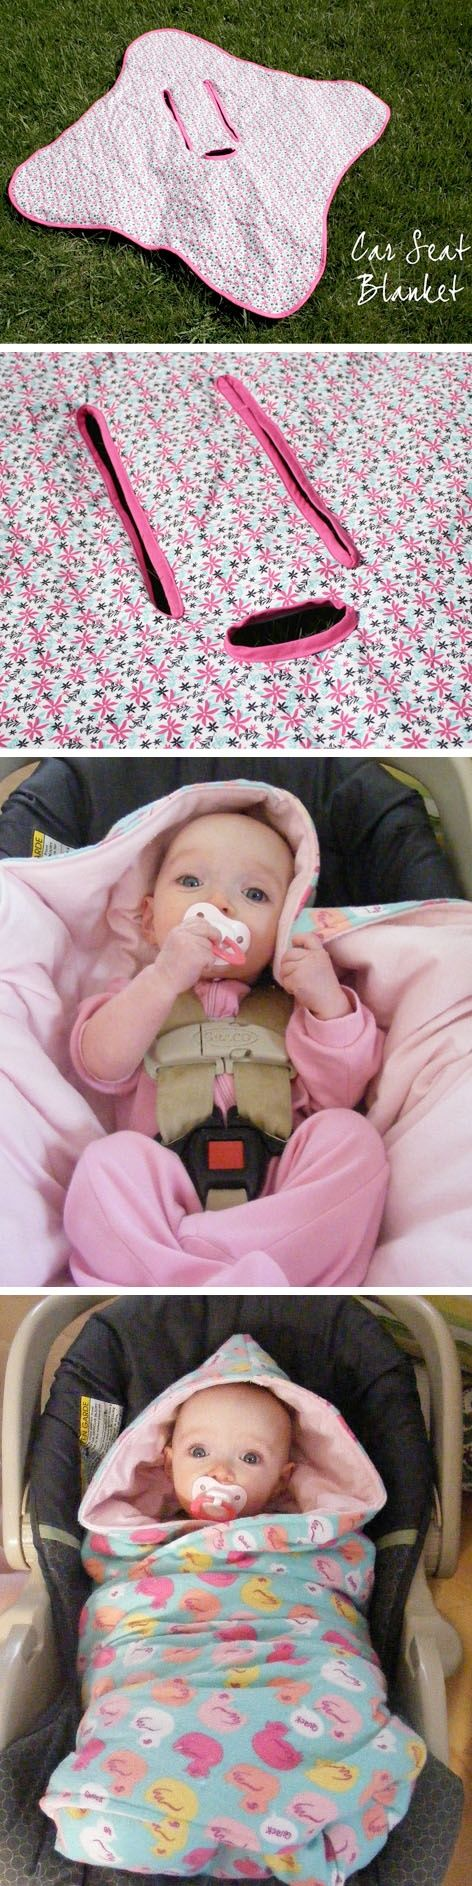 Baby car seat blanket...great idea!!